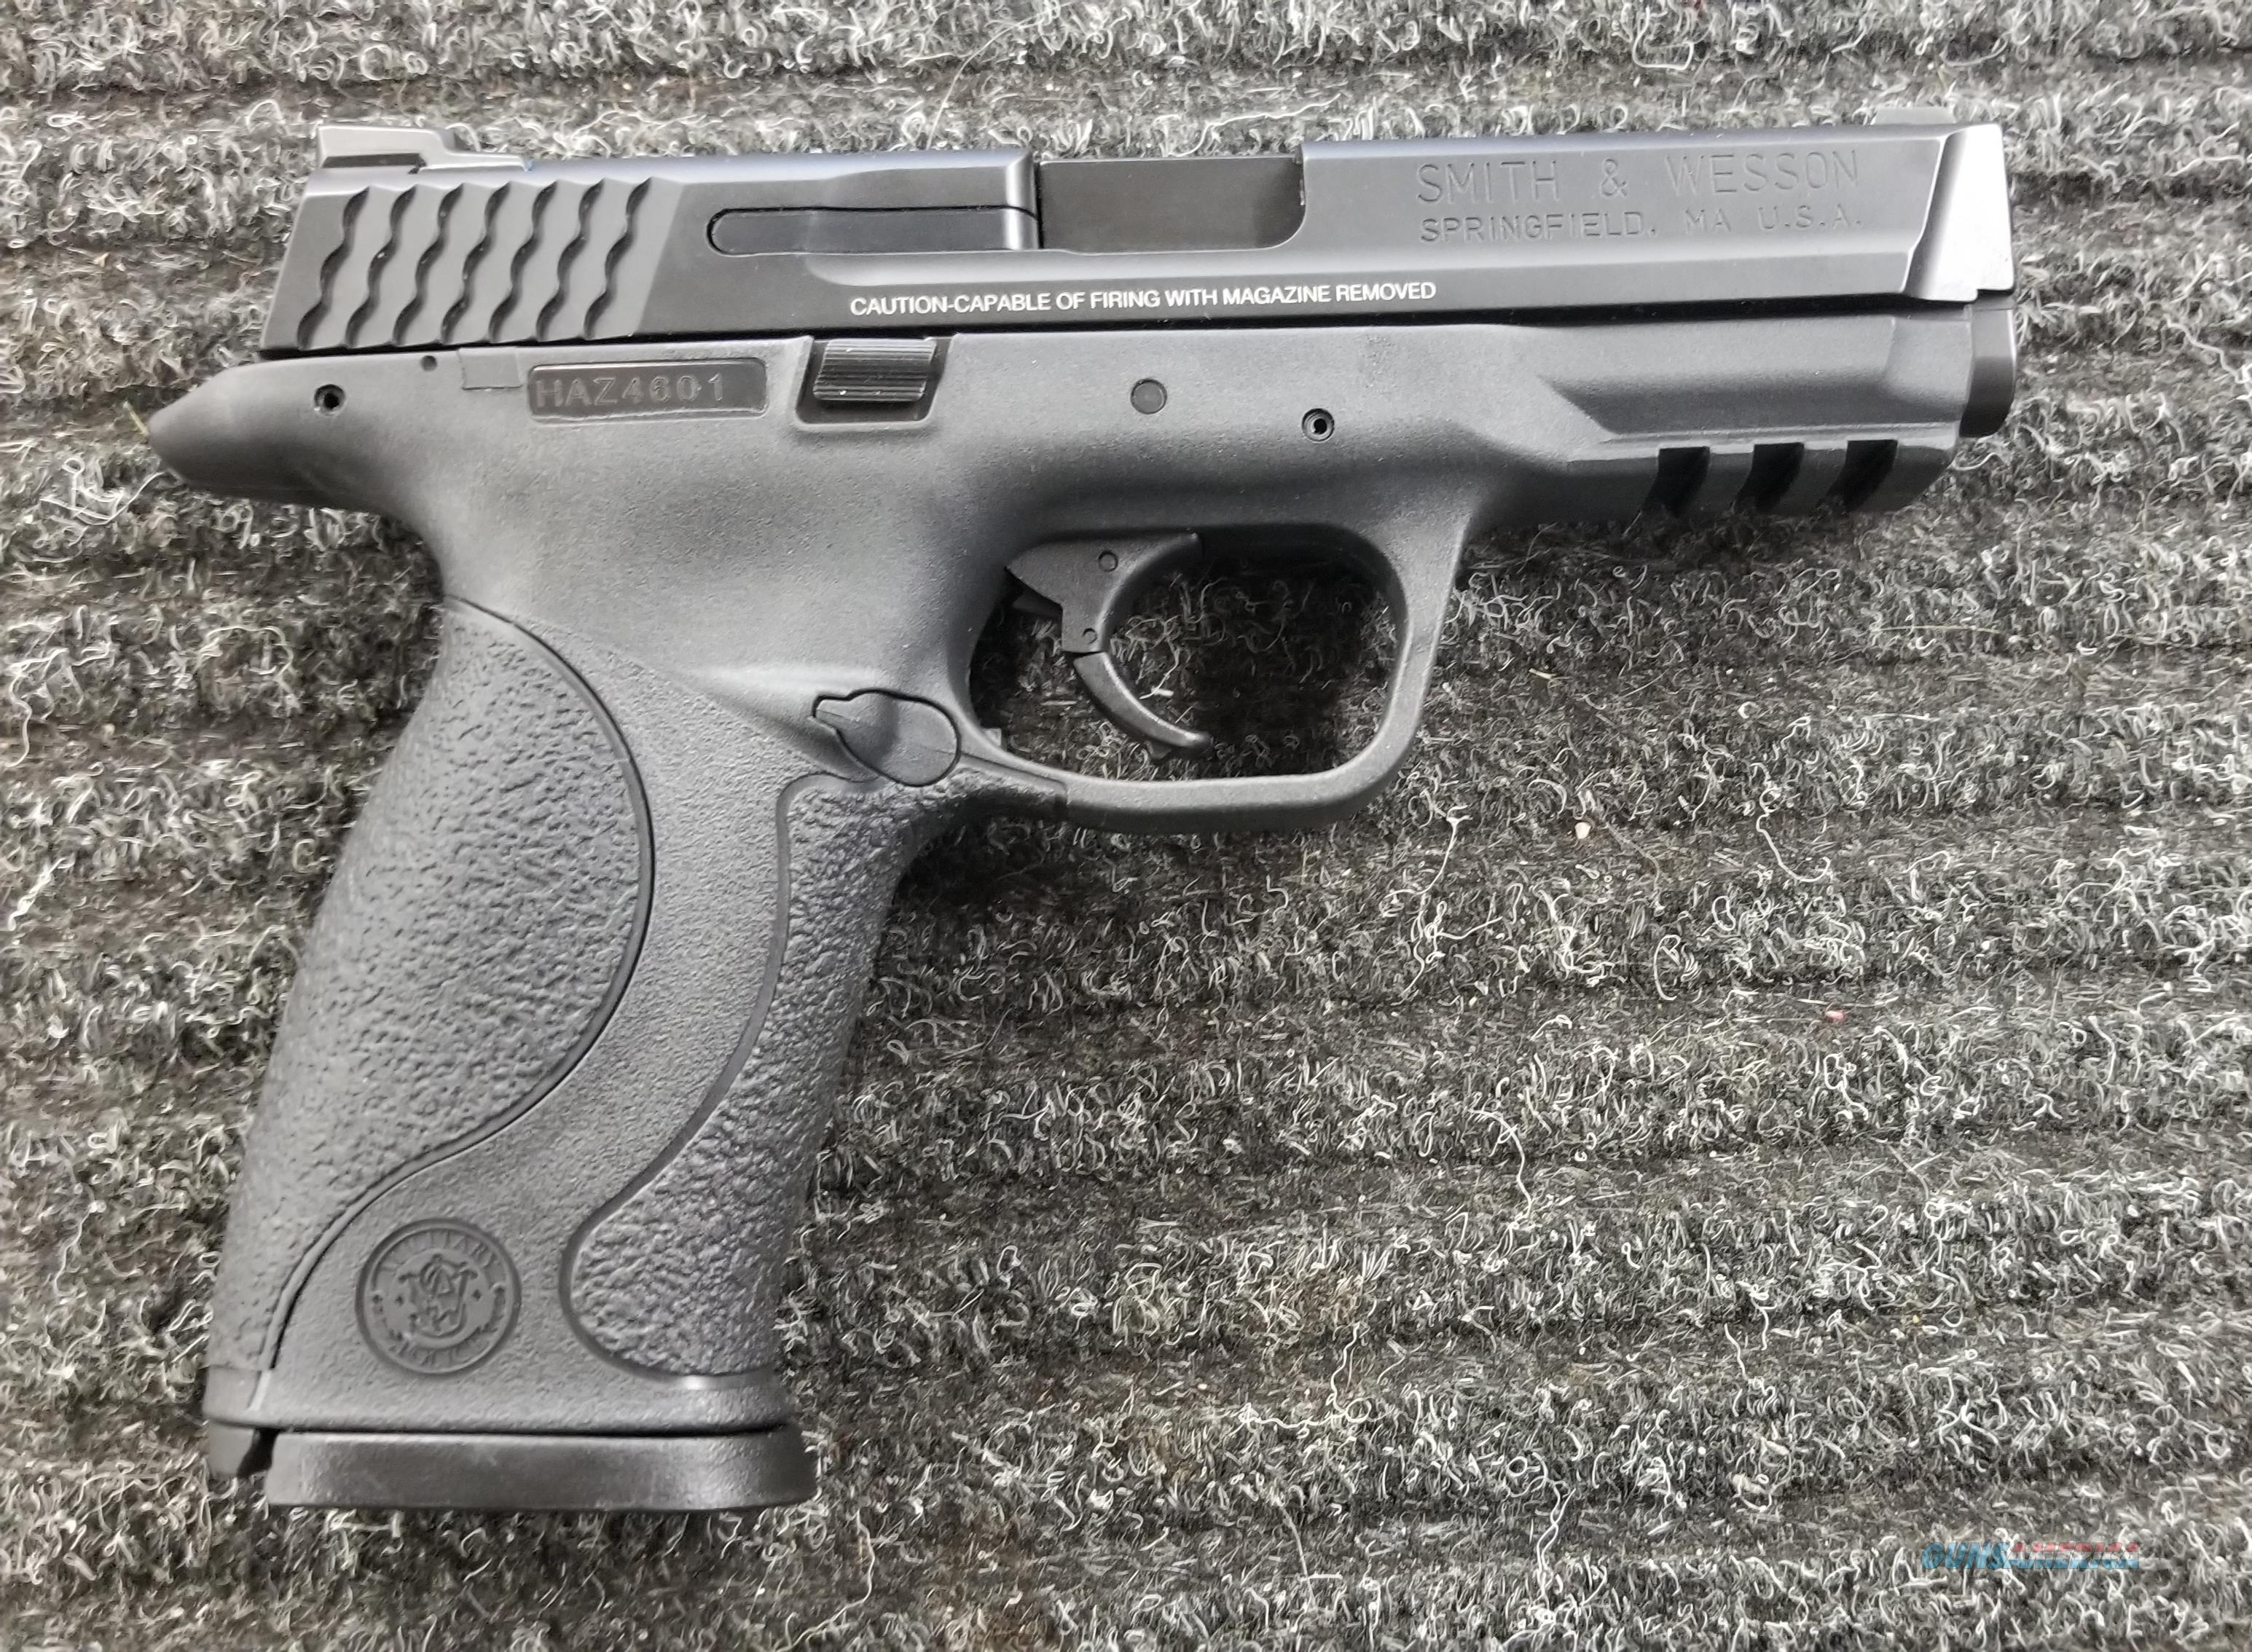 Smith & Wesson M&P Full Size  NIB - Free Shipping  Guns > Pistols > Smith & Wesson Pistols - Autos > Polymer Frame